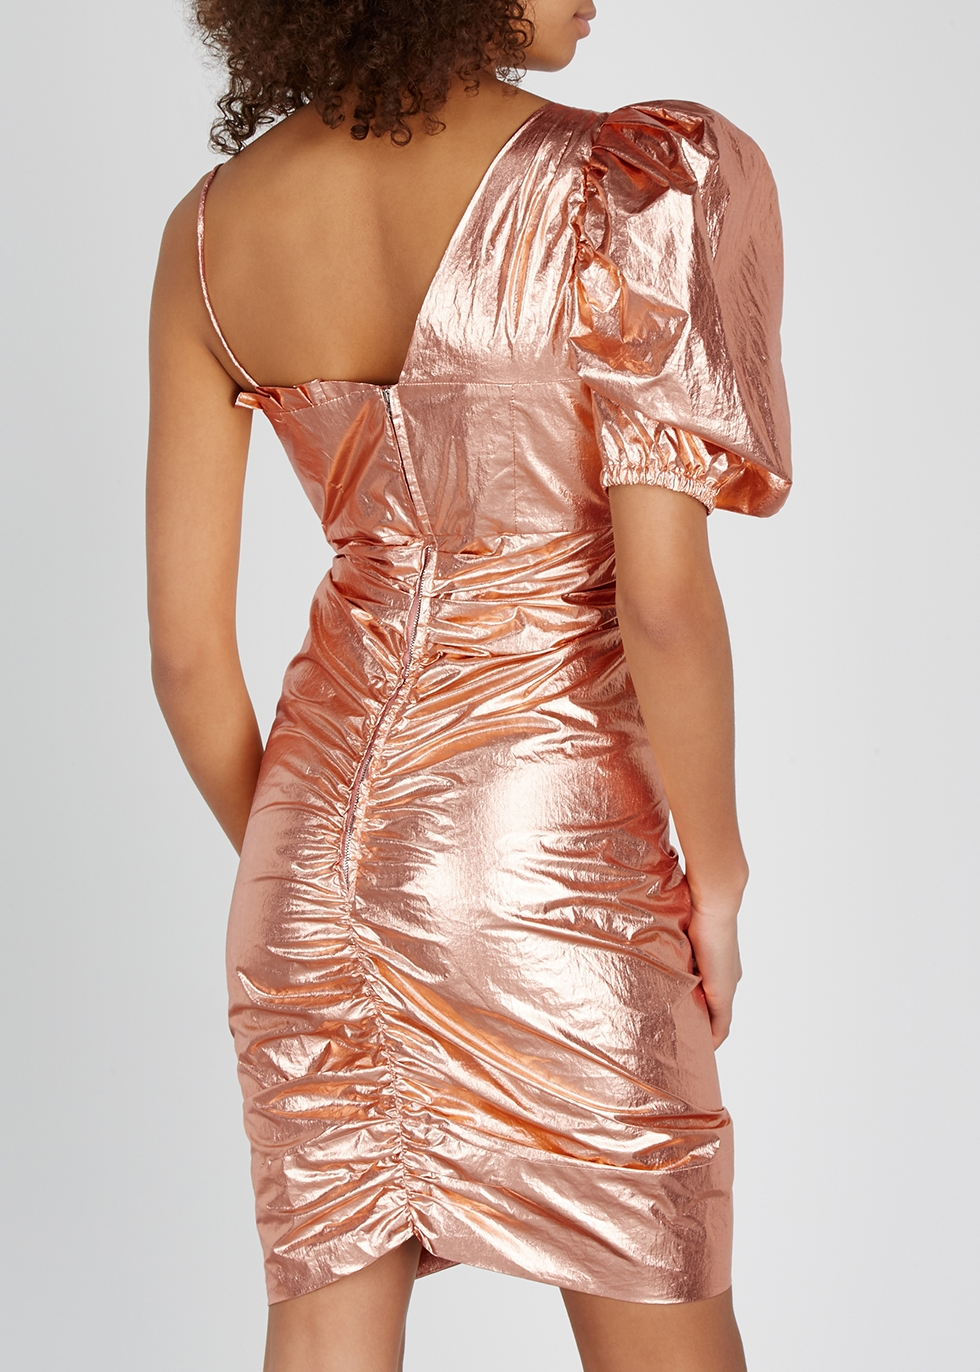 Talma rose gold ruched mini dress - Isabel Marant